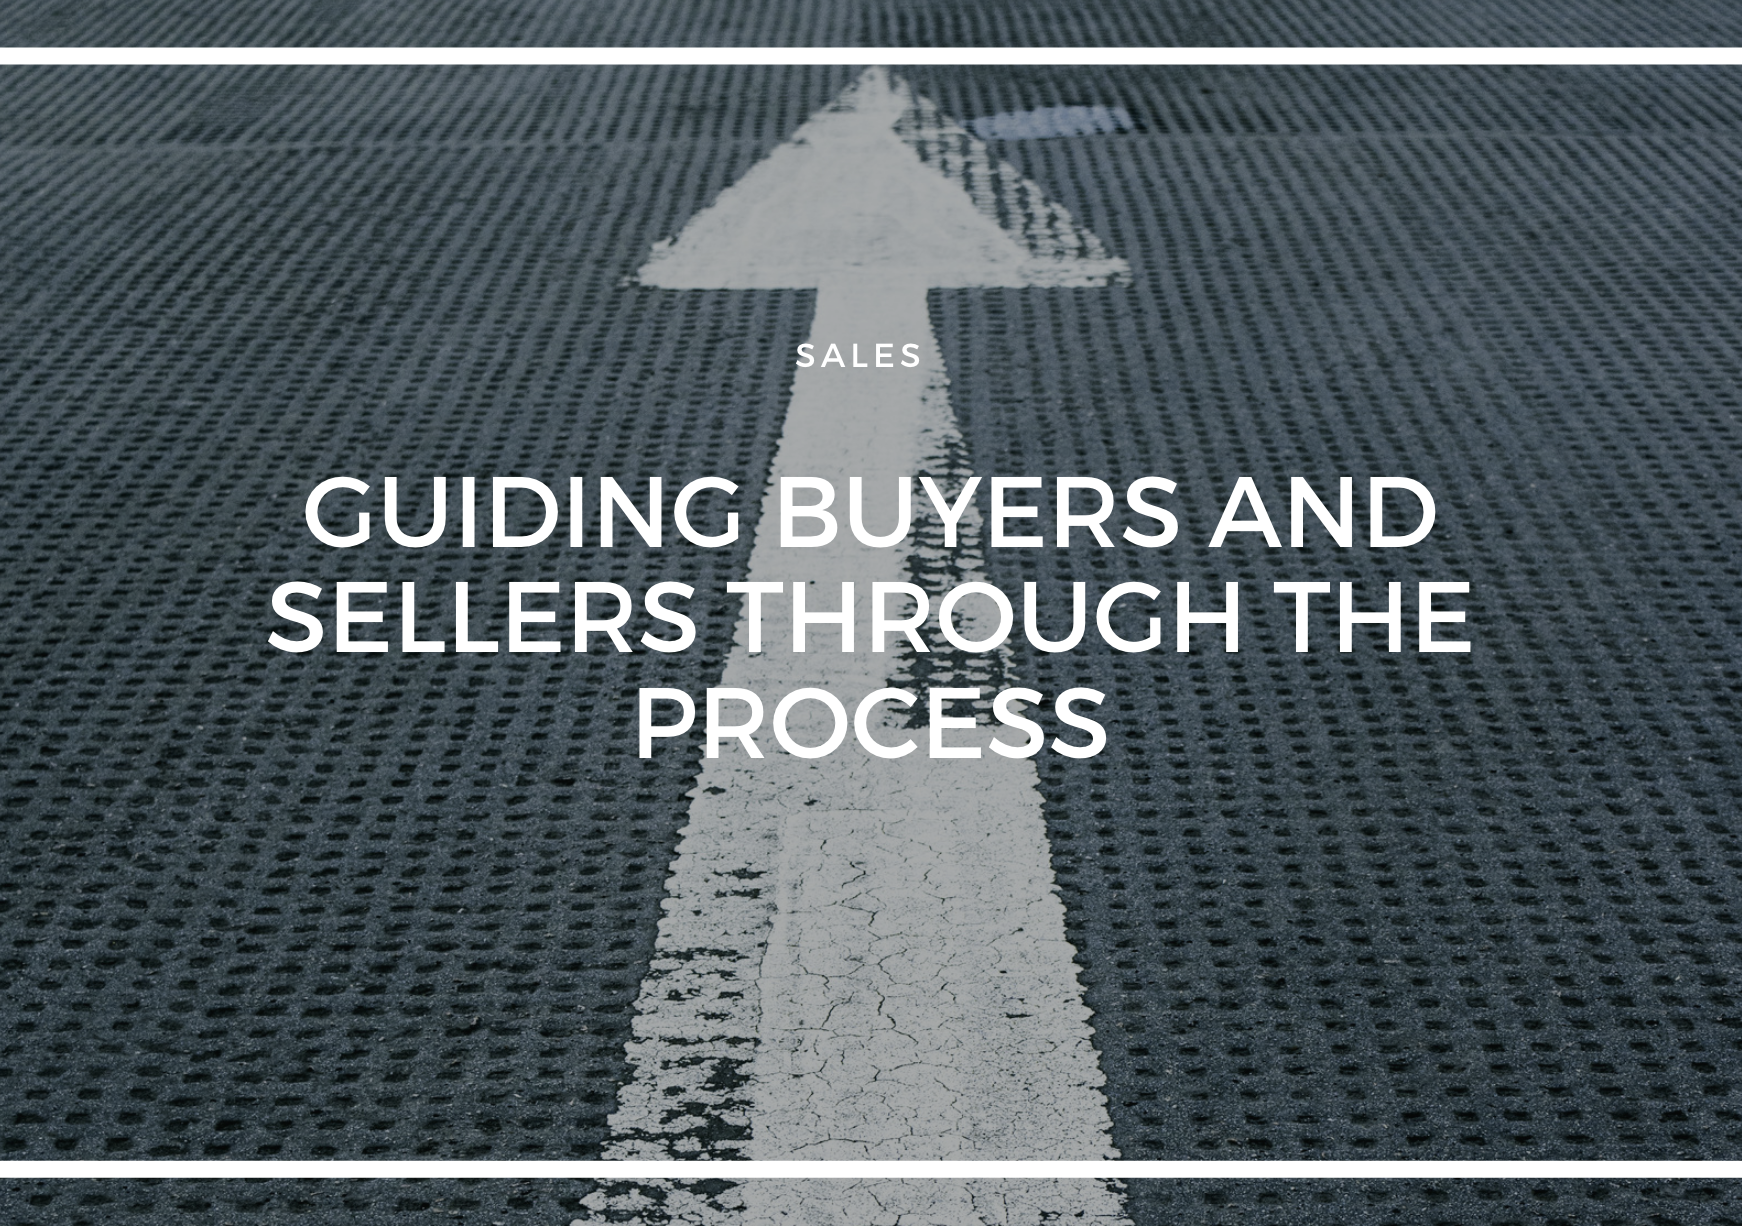 GUIDING BUYERS AND SELLERS THROUGH THE PROCESS.